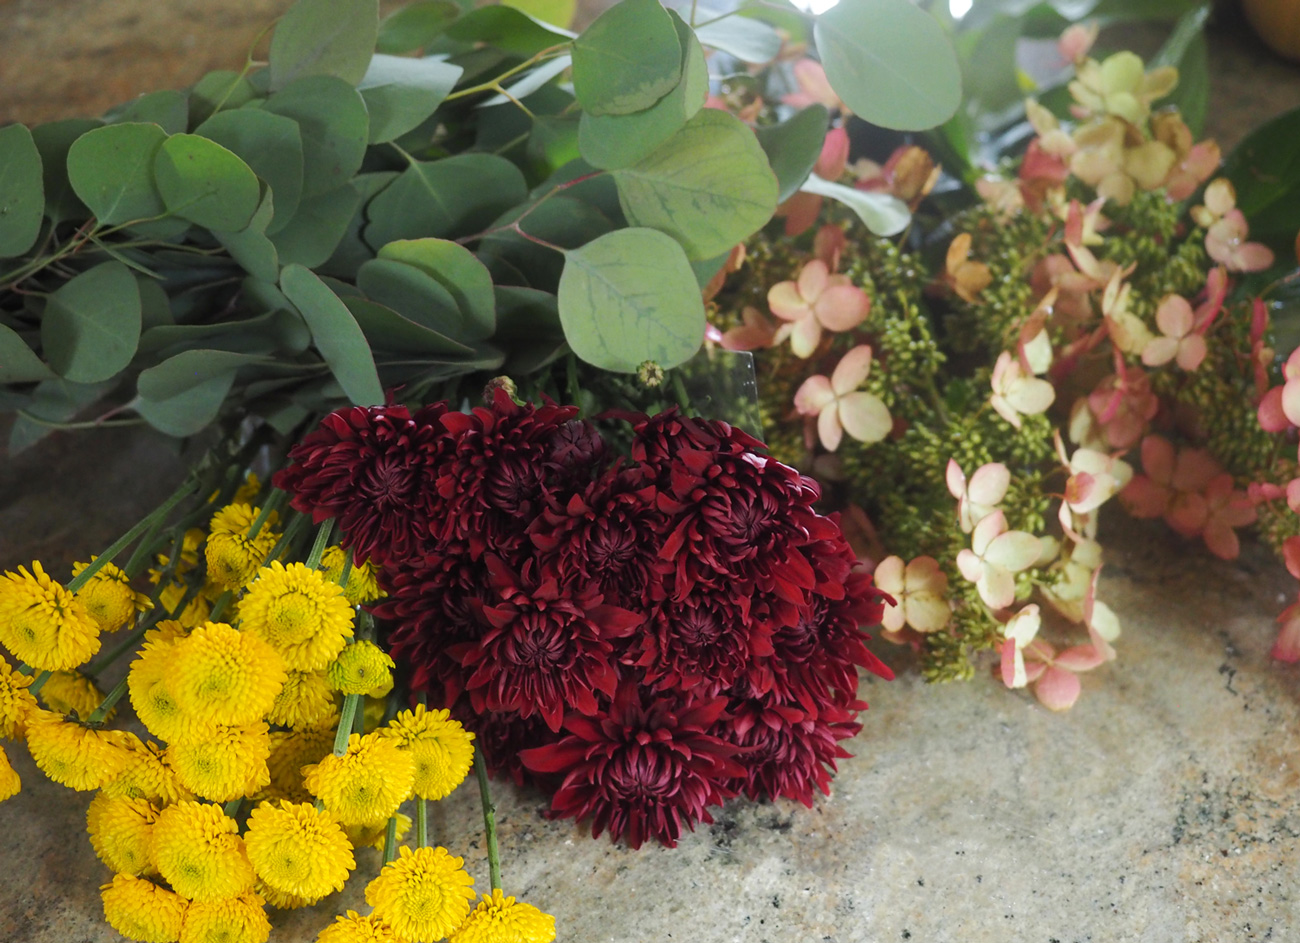 Burst of yellow pom pom mums, crimson mums, eucalyptus leaves and hydrangea are the stars.